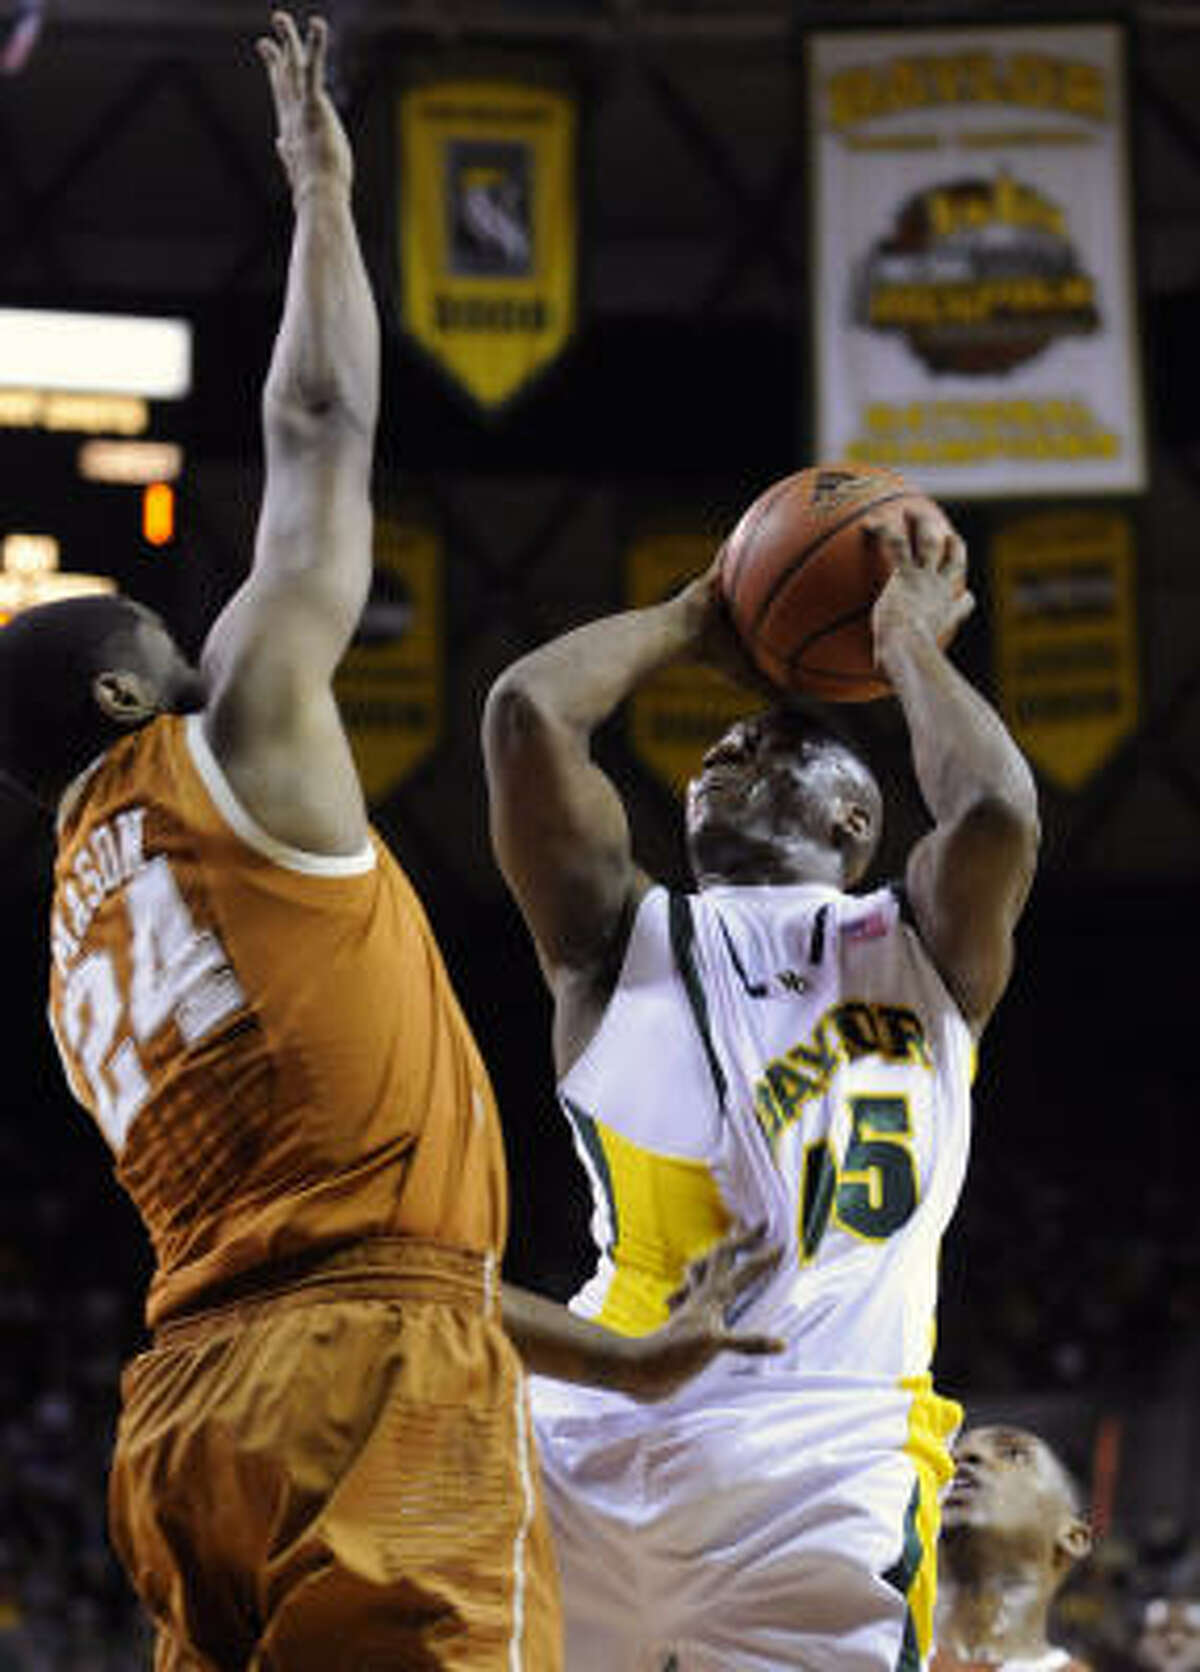 Tweety Carter, playing his last home game for Baylor, had 16 points and 10 assists.